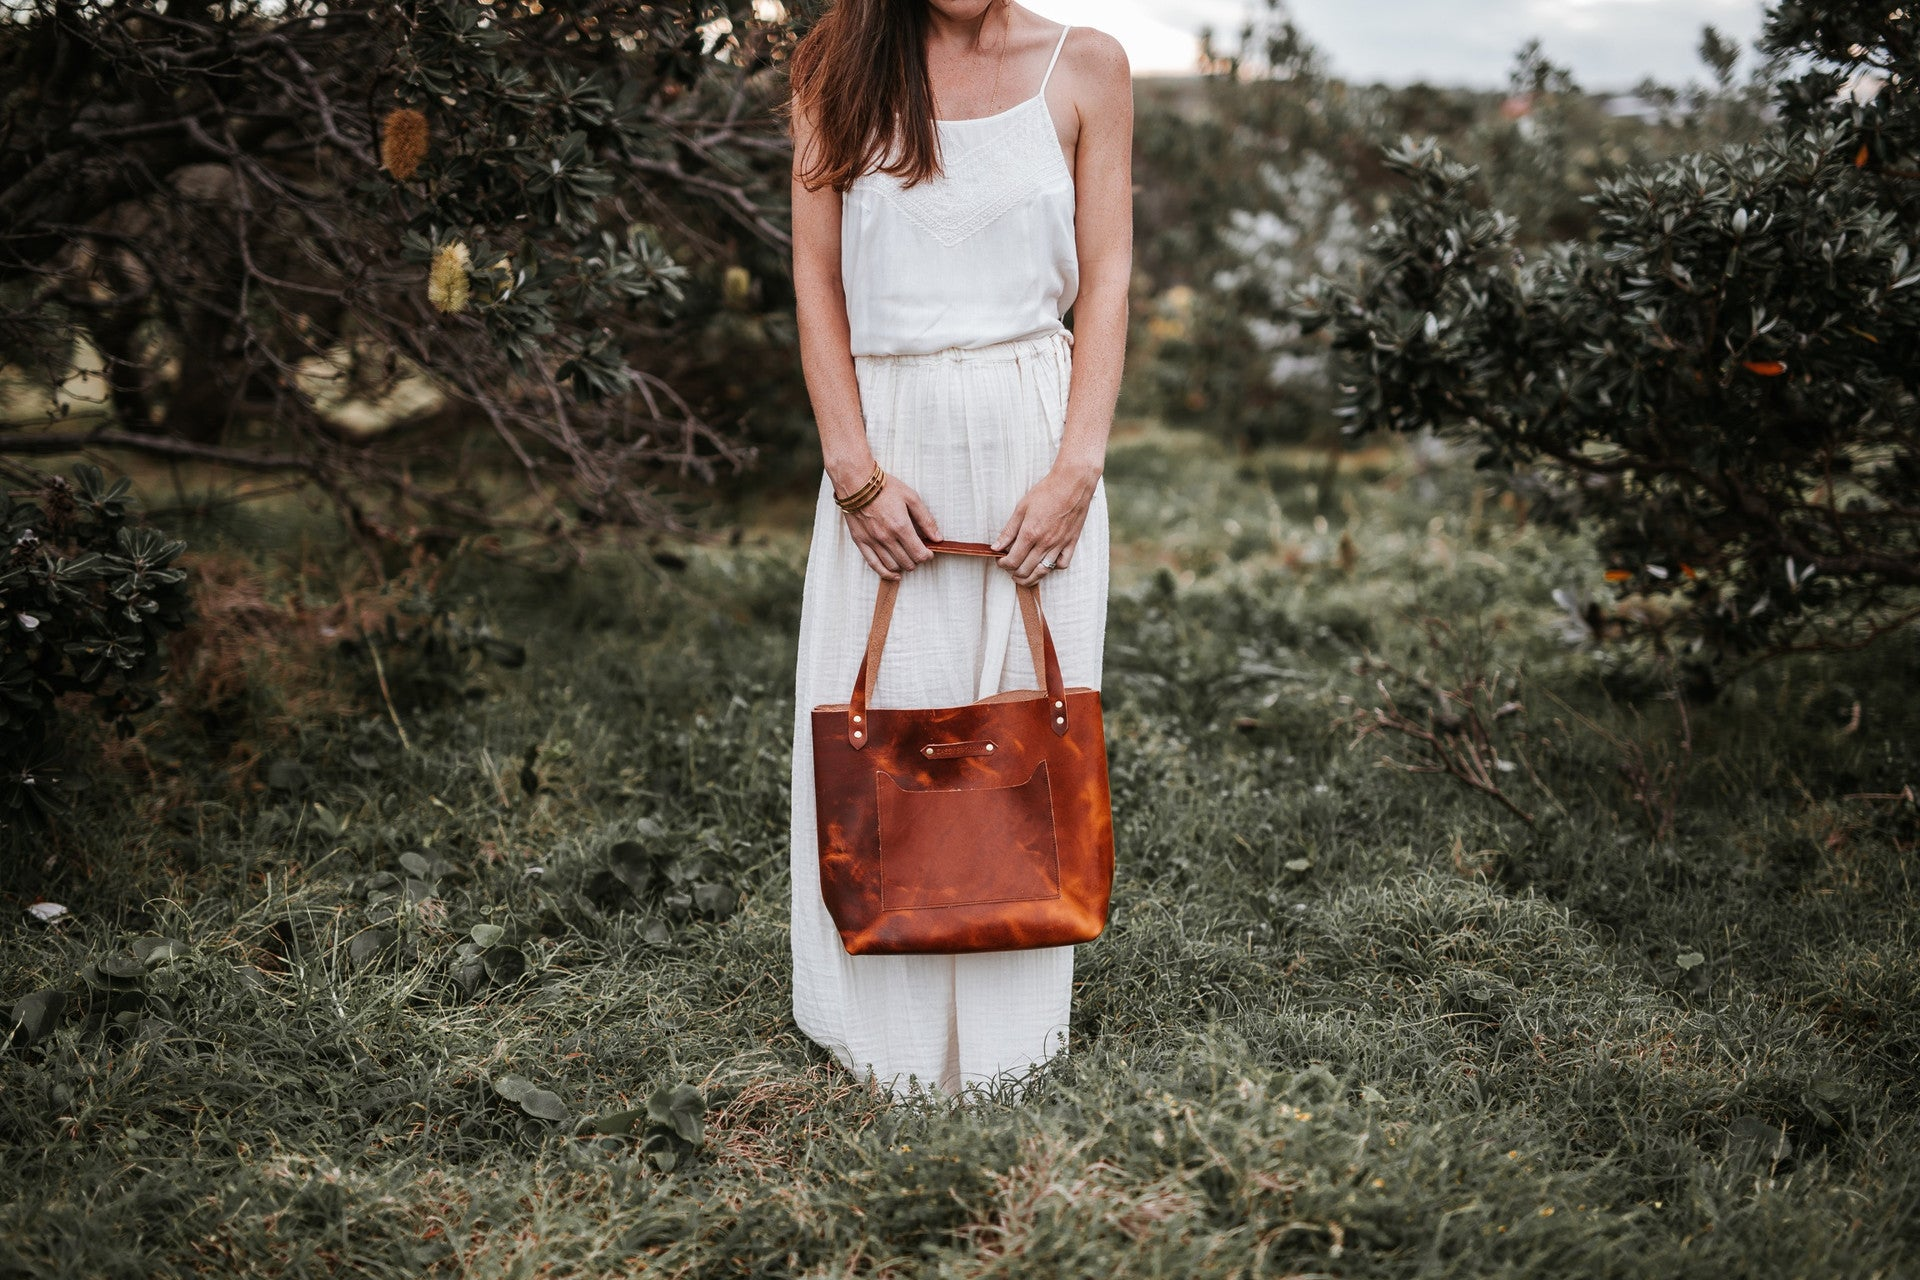 The Adelaide: Designer Leather Handbag - Sassy Sparrow